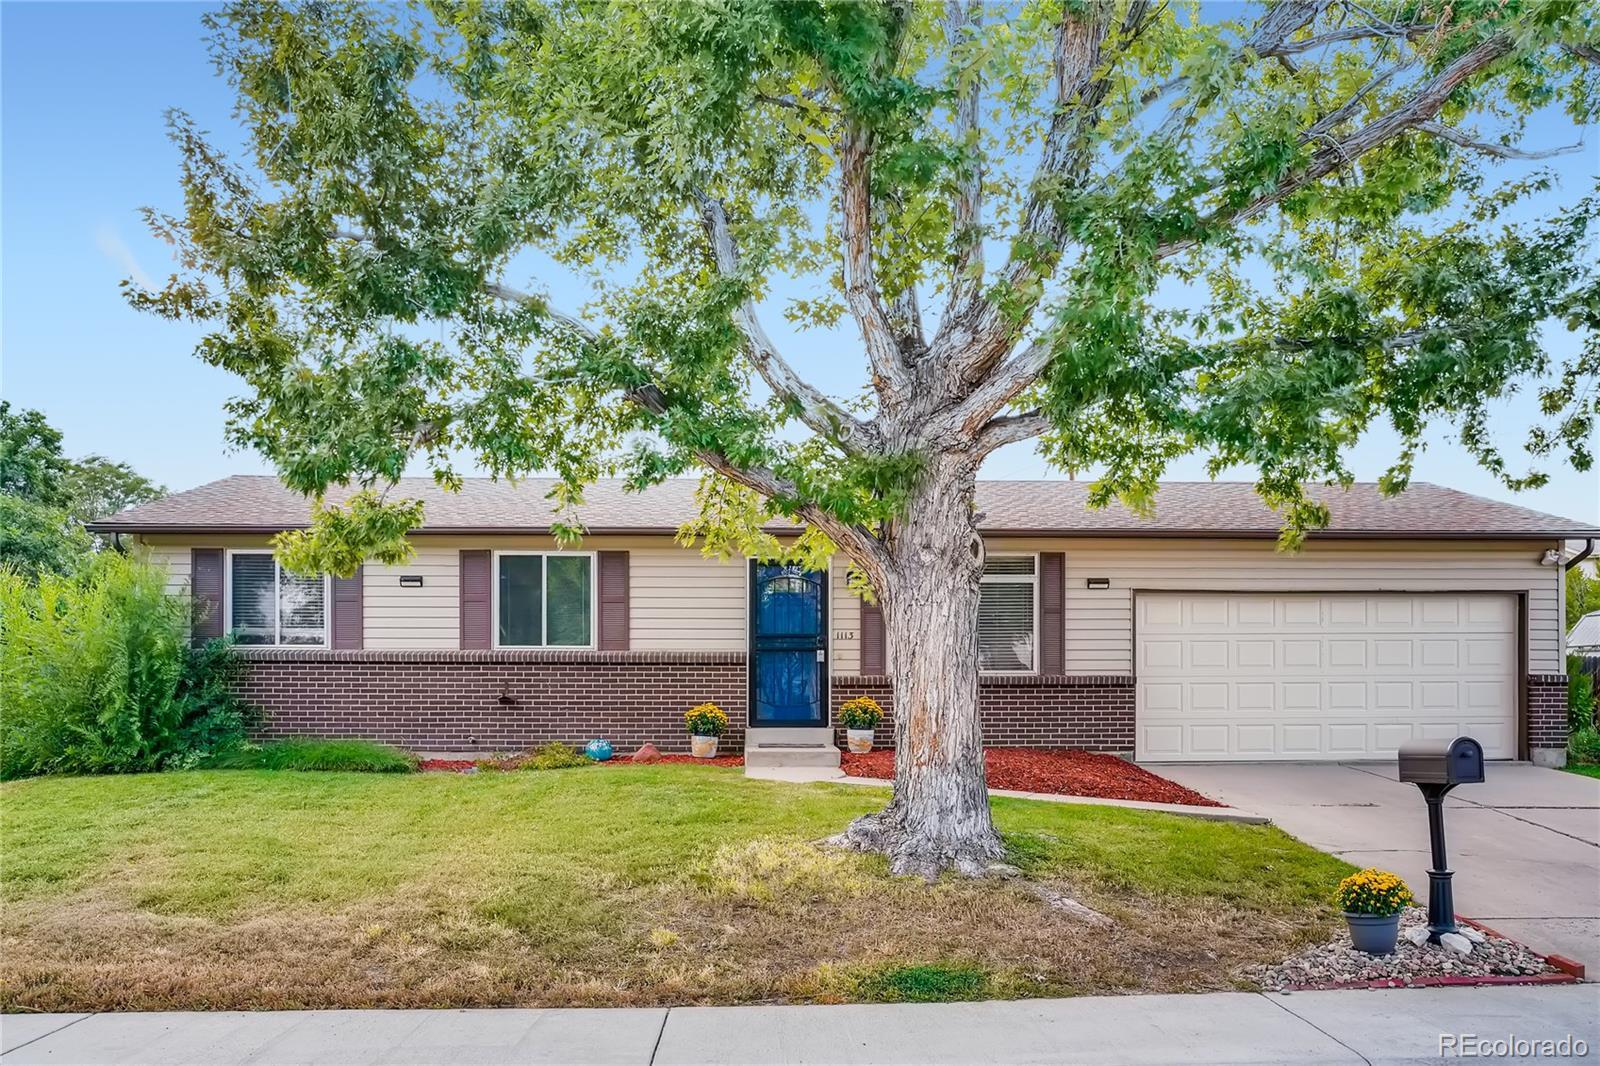 Beautifully maintained ranch-style home situated on an oversized, almost .5 acre lot in rarely available Lochwood. Plenty of room for gardening or outdoor activities like volleyball or even a home basketball court and directly across the street from the path to the Main reservoir walking trail. This impeccable west-central location offers convenient access to major highways and thoroughfares. Only 15 minutes to downtown on 6th. Avenue, but easy access to the mountains. This remodeled gem is complete with laminate wood flooring, an abundance of natural light, and thoughtful updates throughout. The eat-in kitchen showcases new stainless steel appliances, modern grey cabinetry, and a serving window that overlooks the formal living space. Spotless and newly painted with new carpet in the bedrooms, this home is in pristine condition with luxurious, updated finishes throughout. Continue down the hallway to find a fully upgraded bathroom and three generously sized bedrooms. Discover more square footage in the finished basement which houses a large recreation area with built-in shelving, a 3/4 bathroom, two non-conforming bedrooms, and a bonus room that provides a plethora of storage space. Come across an entertainer's paradise in the spacious, beautifully landscaped backyard! Host a barbeque under the covered patio or go for a swim in the above-ground pool with a recently replaced liner. The sprawling lawn, shaded by mature trees, offers ample space for croquet or fetch with Fido. This residence is nestled next to Green Mountain in a quiet community with minimal traffic. The adjacent main reservoir and its' 1.2-mile trail make for a wonderful gentle stroll and captivating views of downtown (awesome for viewing annual fireworks displays). Starbucks is located conveniently off the trailhead and a popular location for activities like picnics and fishing! This home was extensively upgraded in 2021, including new paint, new carpet, new appliances, and bathroom remodel.